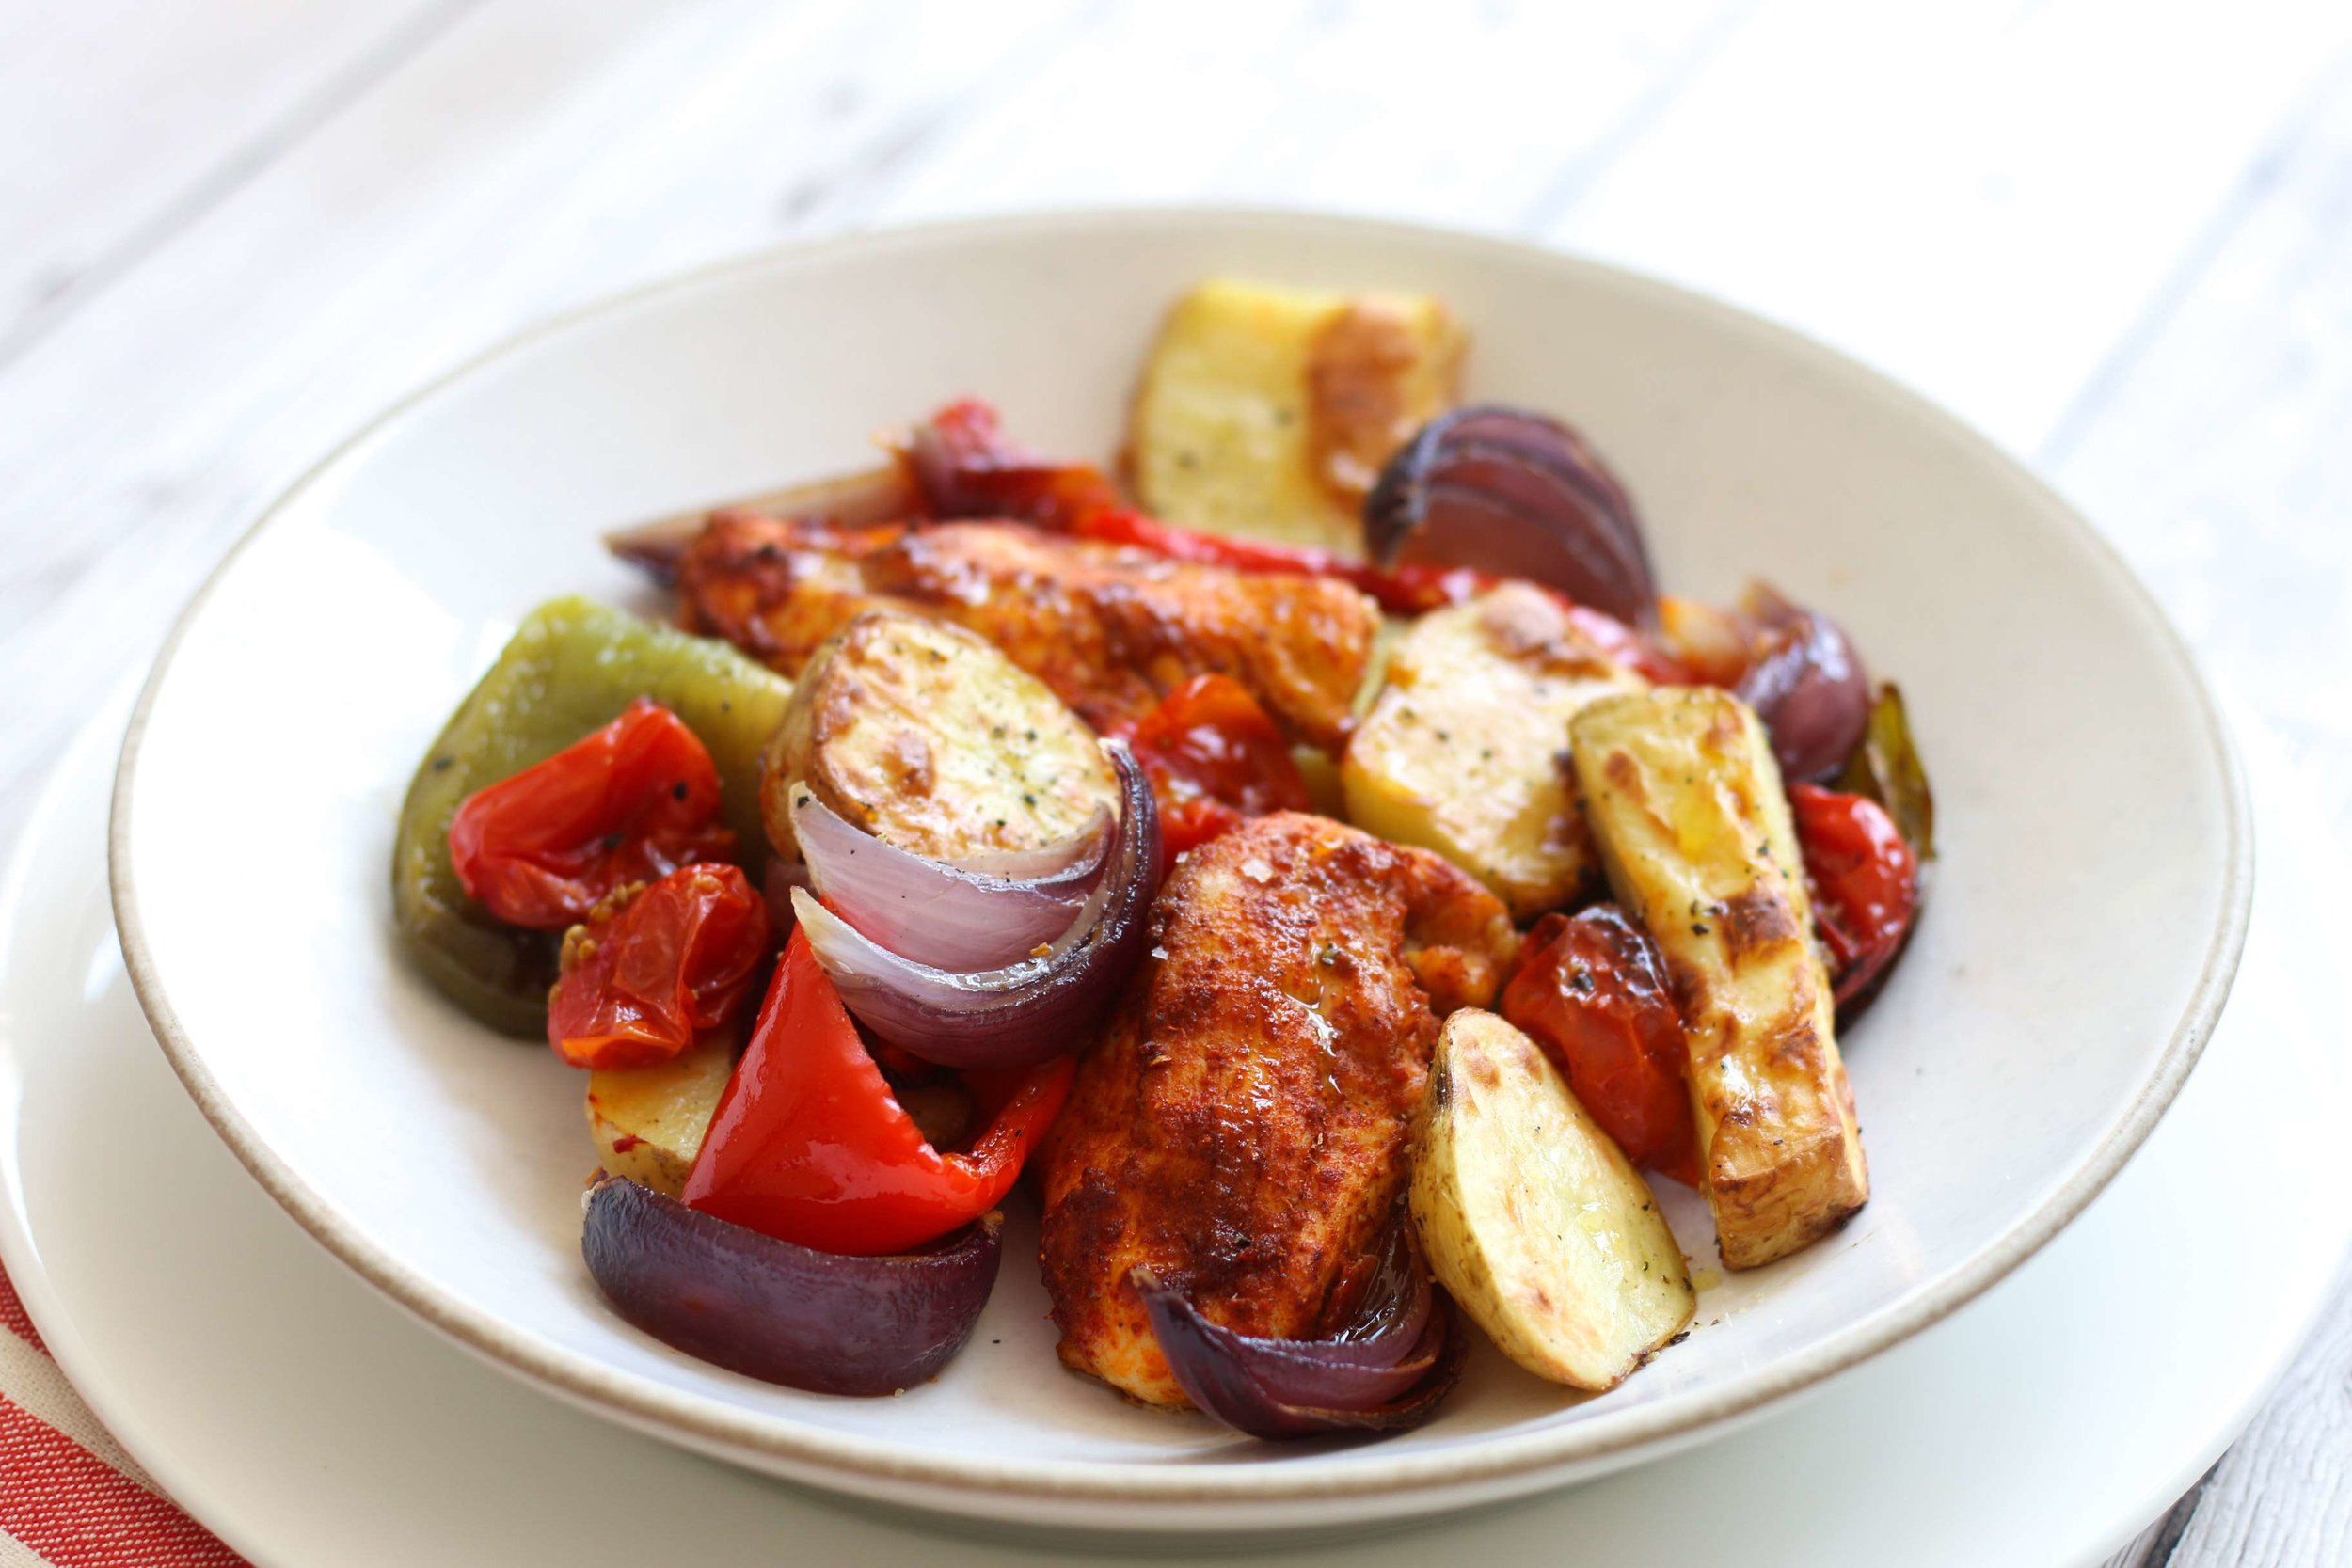 muscle-foods-healthy-chicken-roast-veg-potatoes-easy-dinner-cheap-eat-recipe-dinner-limahl-asmall-tiny-budget-cooking.jpg